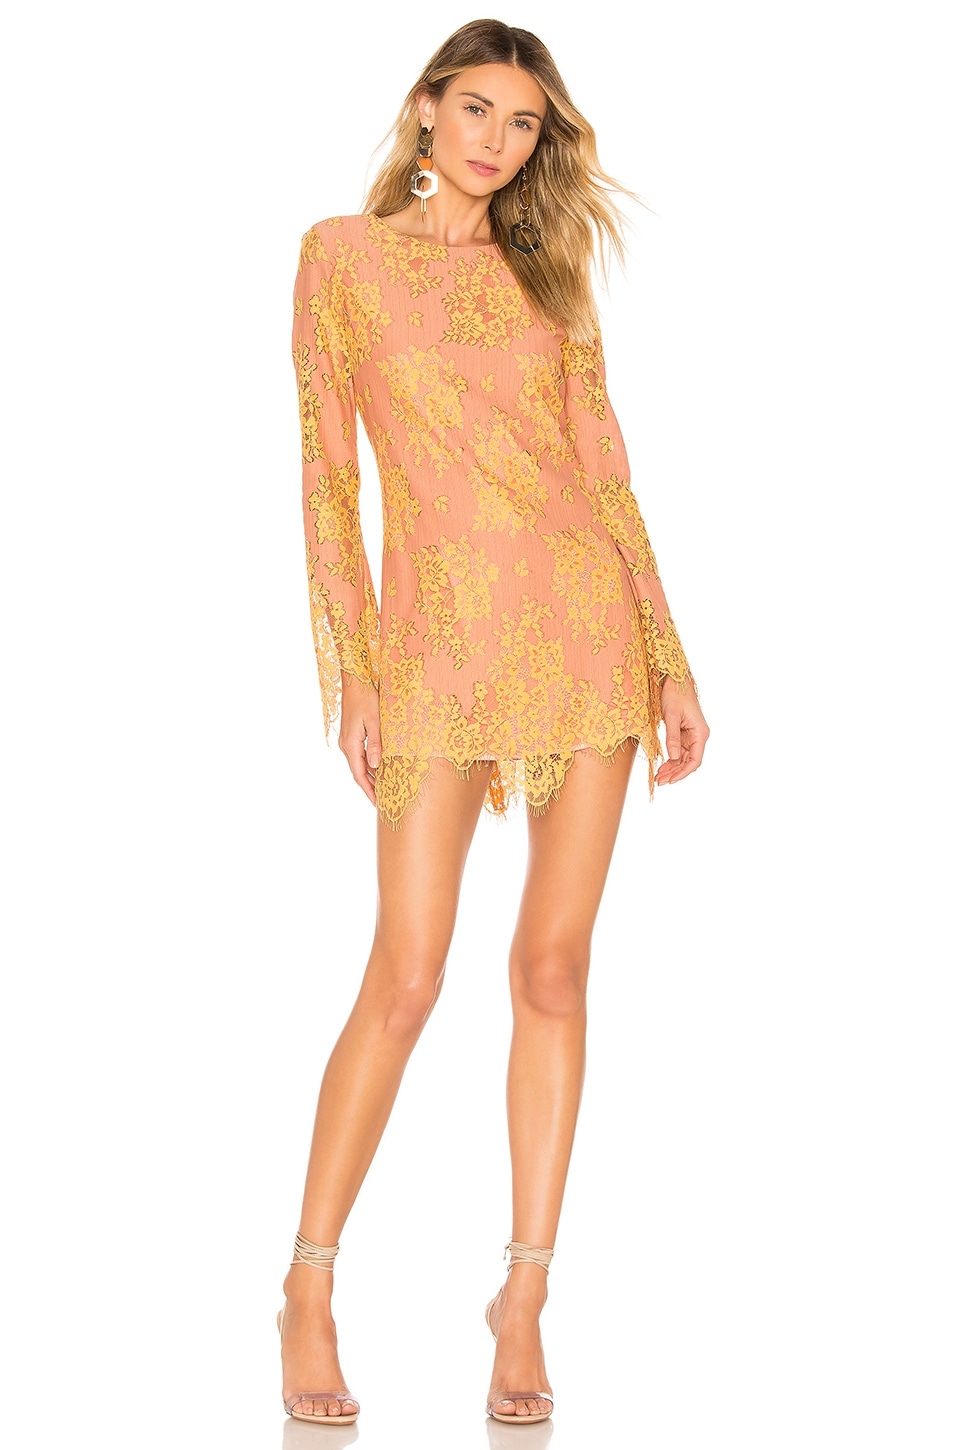 MAJORELLE Octavia Mini Dress in Golden Blush